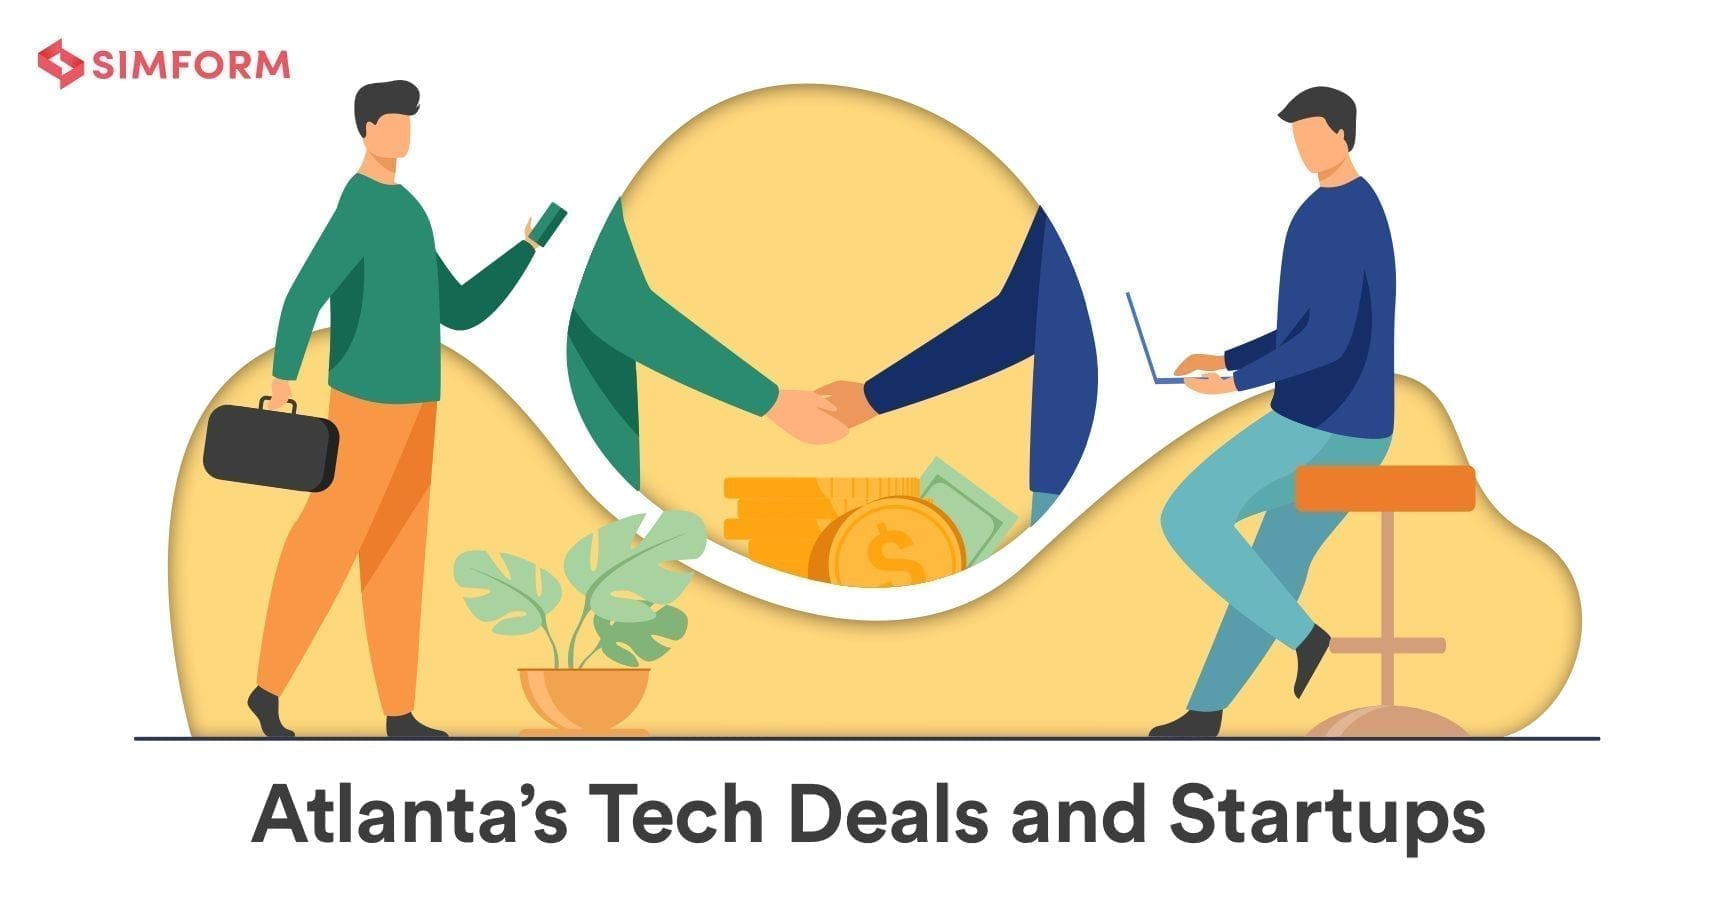 Atlanta's Leading Tech Deals and Startups